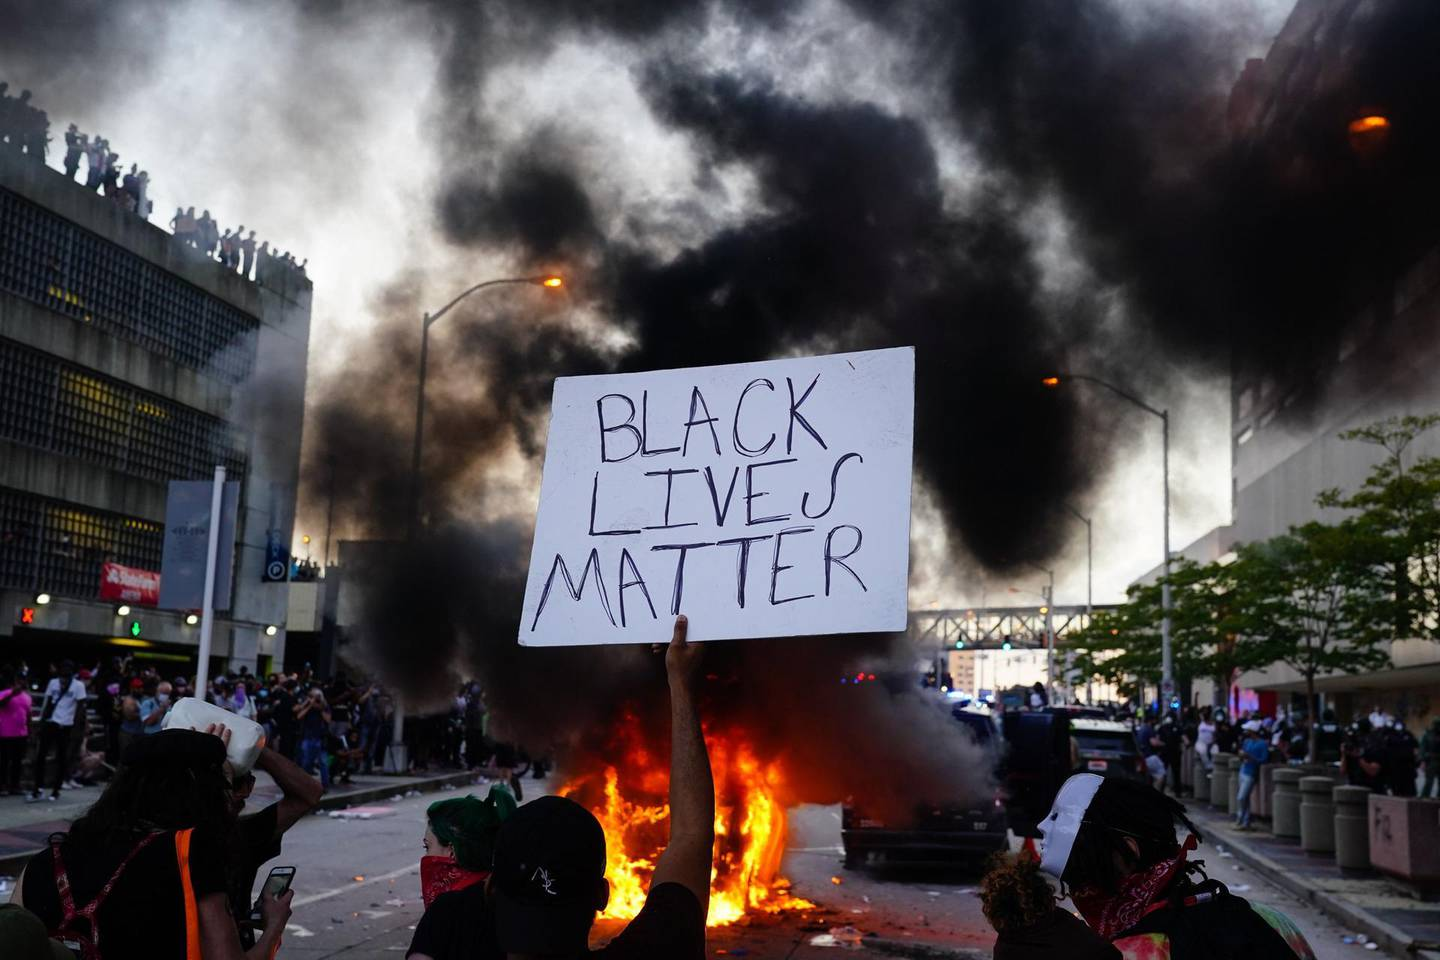 """(FILES) In this file photo a man holds a Black Lives Matter sign as a police car burns during a protest on May 29, 2020 in Atlanta, Georgia. When Ridley Scott and Kevin Macdonald created documentary """"Life in a Day"""" a decade ago, their goal was to construct a video portrait of a typical 24 hours on Earth, as filmed by tens of thousands of amateurs around the world. Repeating the trick in """"Life in a Day 2020,"""" stitching together footage shot last summer as the coronavirus pandemic and massive anti-racism protests turned the world on its head, their sequel is anything but typical. Assembled by a vast team of editors from 324,000 clips, the film -- which premieres February 1, 2021, at Sundance before hitting YouTube -- captures the eerily empty streets, collective cabin-fever and civil unrest of a year like no other. / AFP / GETTY IMAGES NORTH AMERICA / Elijah Nouvelage"""